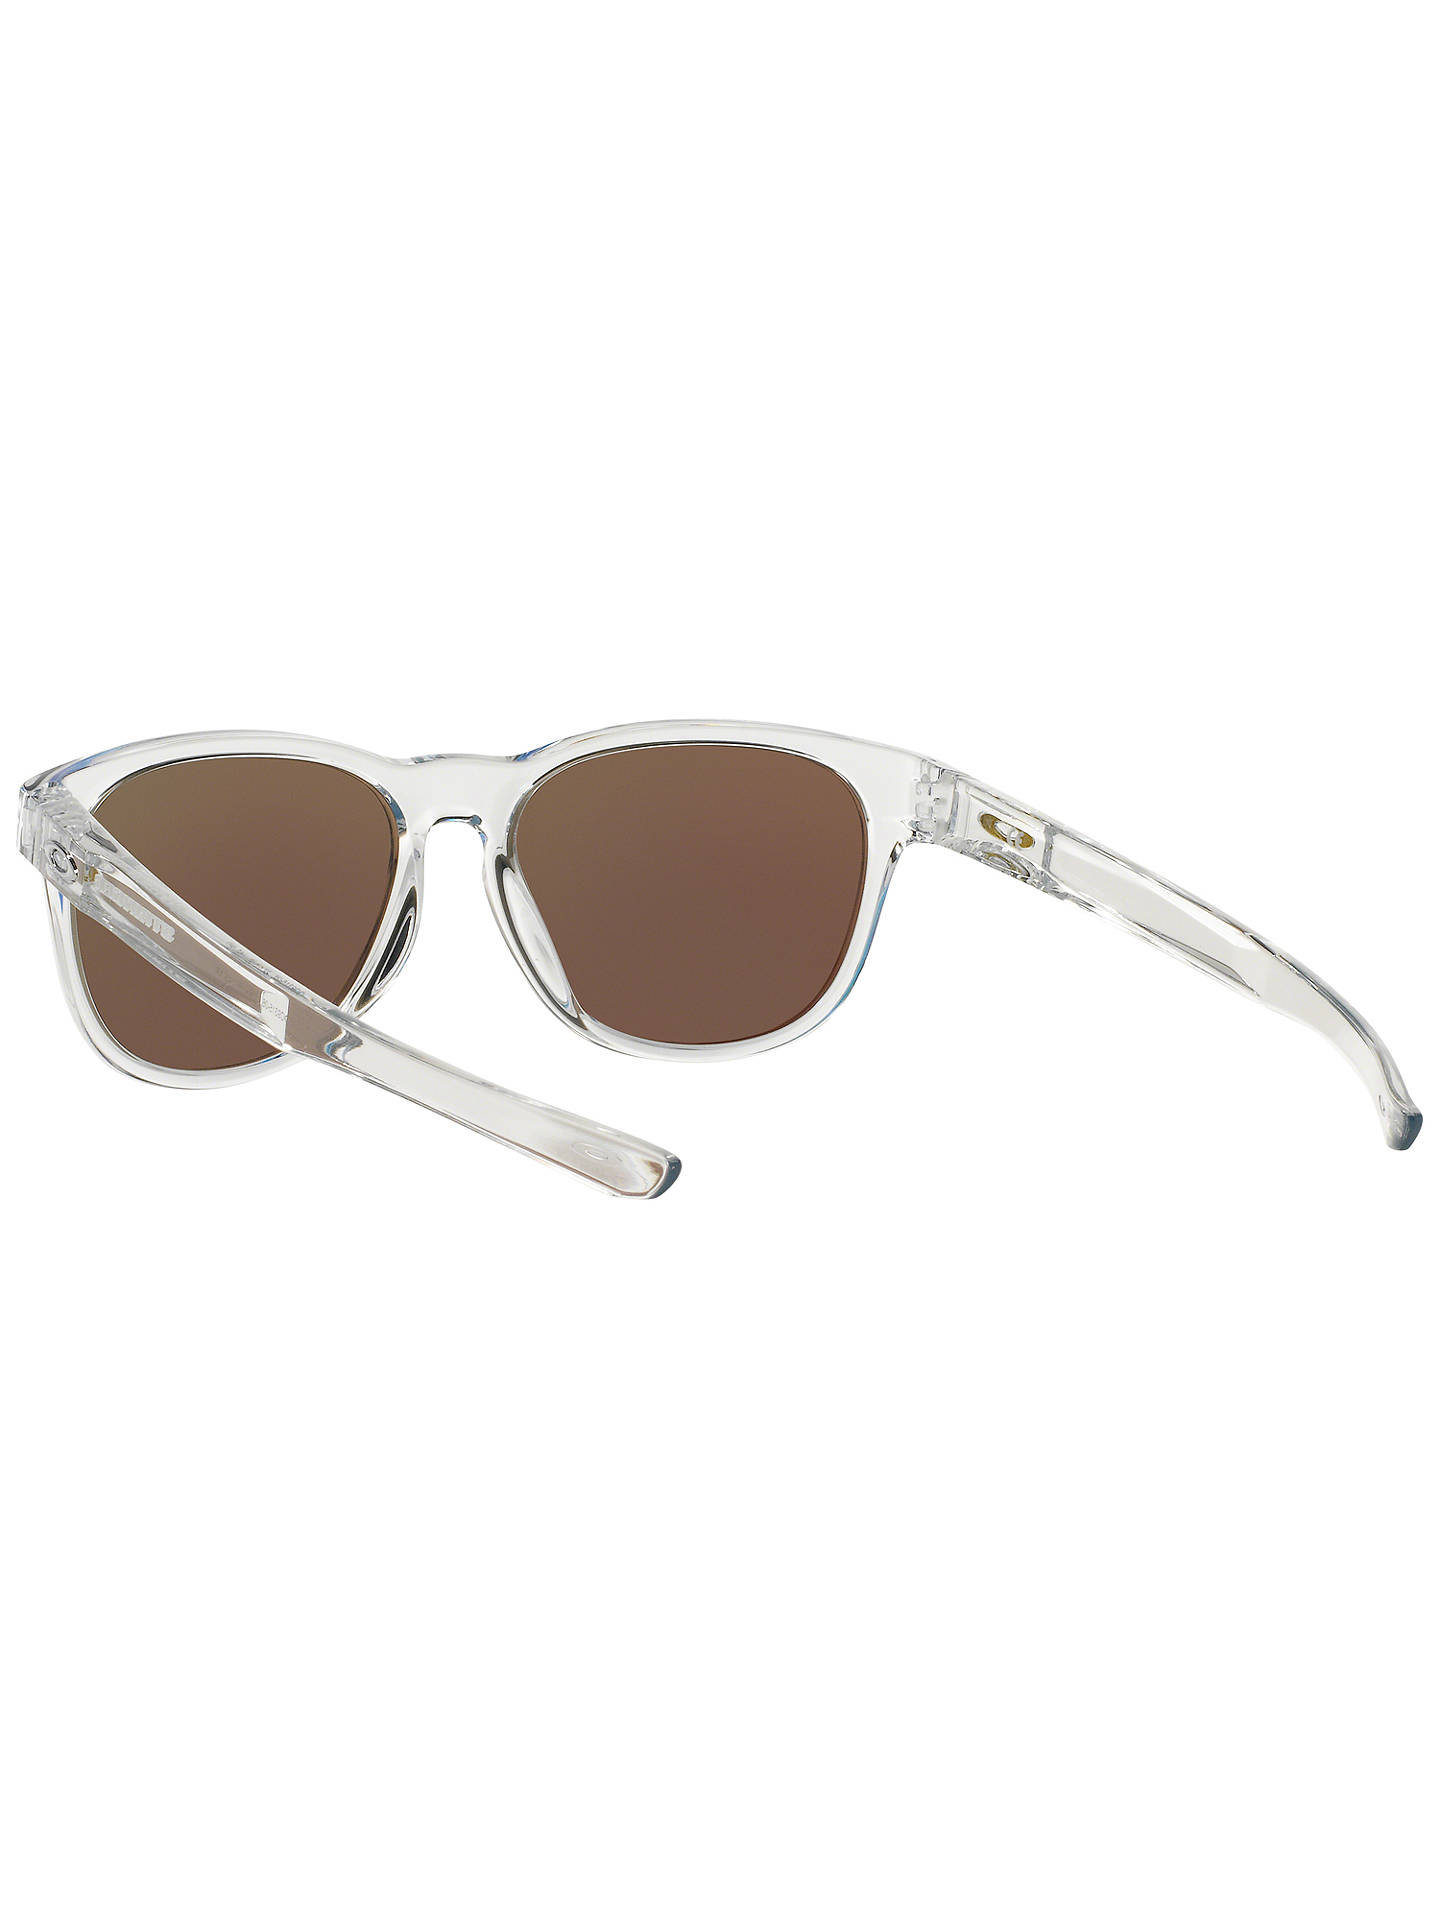 BuyOakley OO9315 Men's Stringer Oval Sunglasses, Clear/Blue Online at johnlewis.com